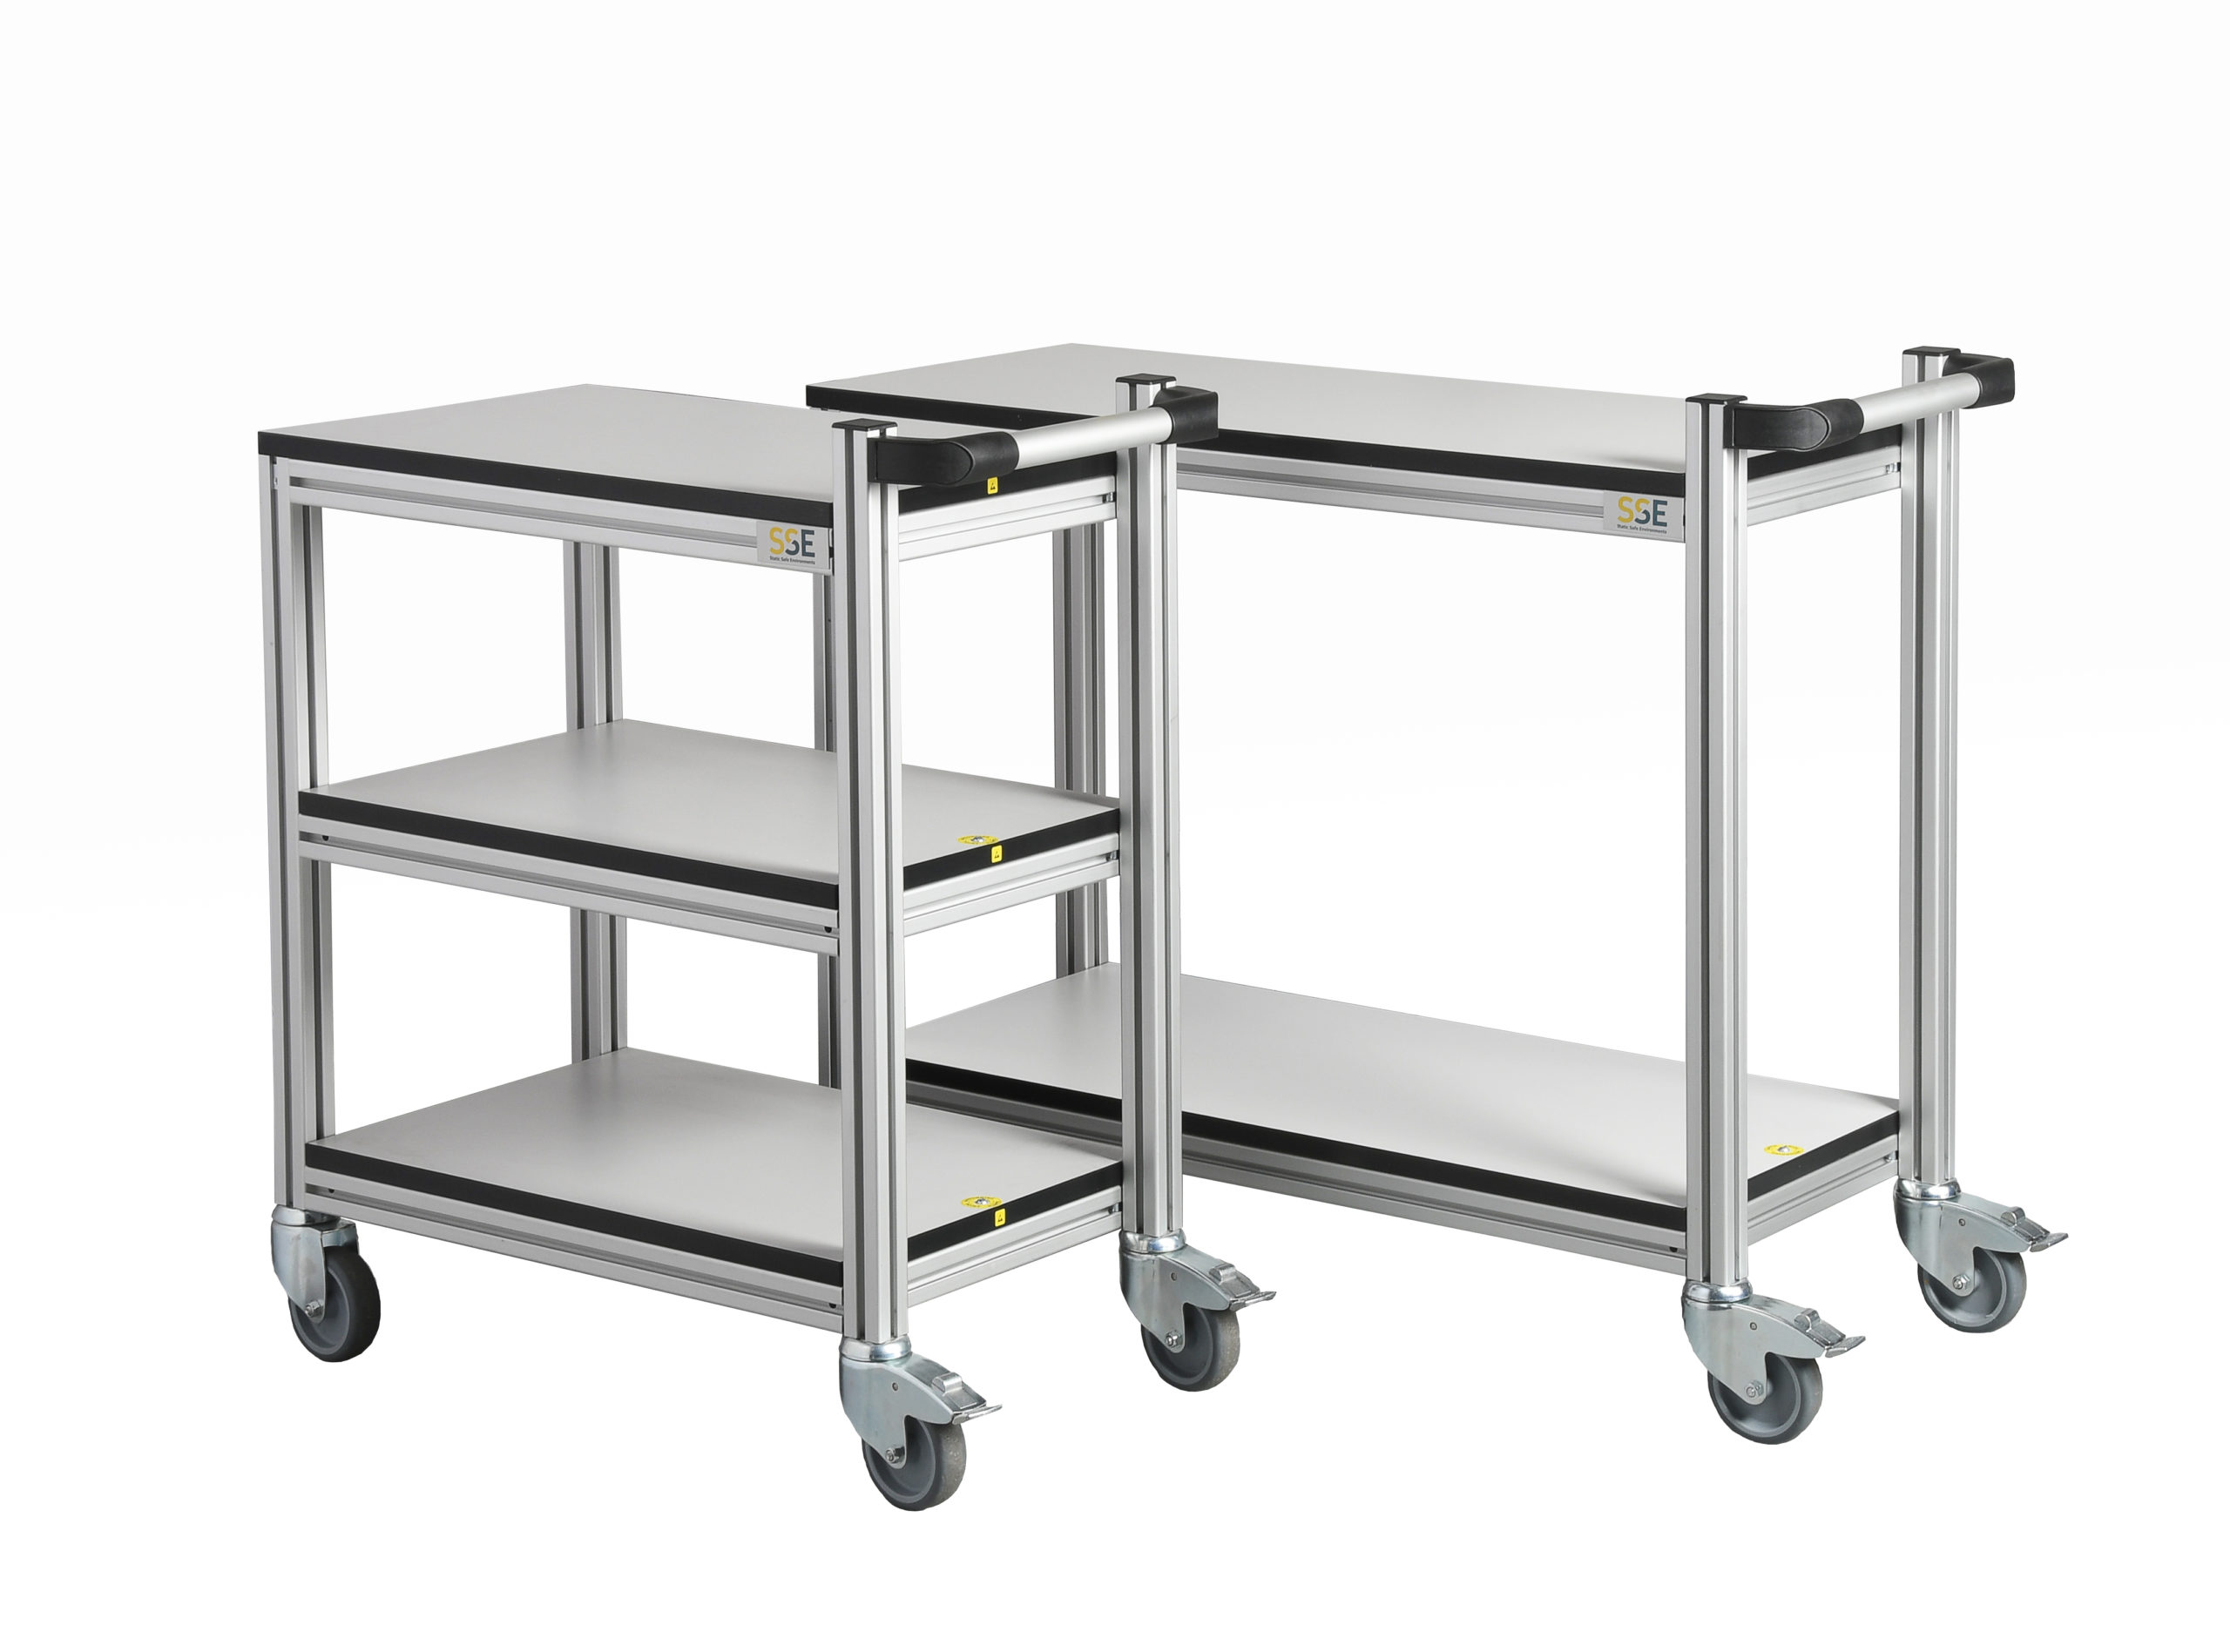 Kitehawke aluminium ESD trolleys